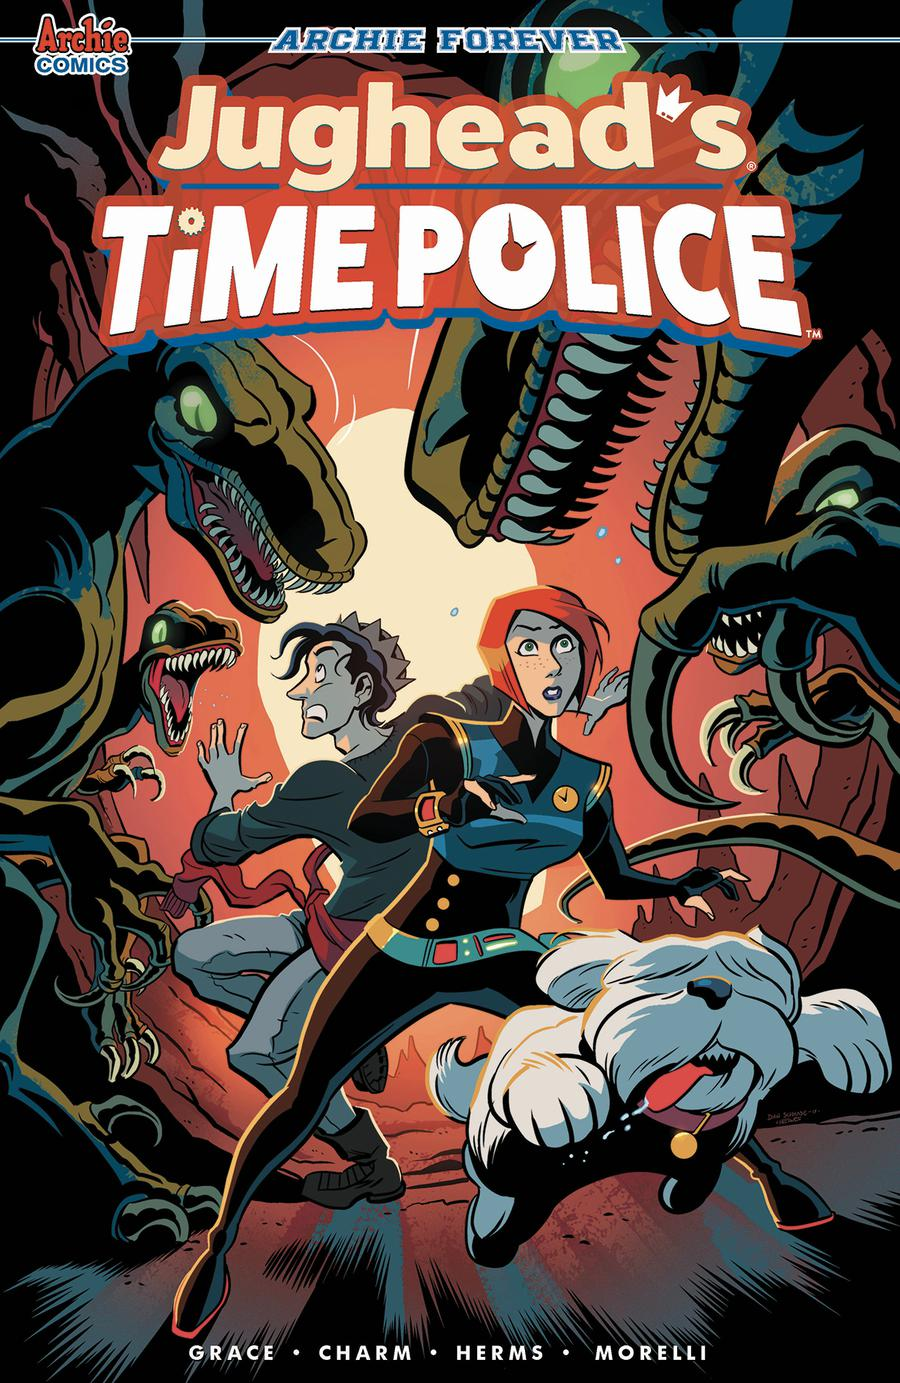 Jugheads Time Police Vol 2 #4 Cover C Variant Dan Schkade & Matt Herms Cover